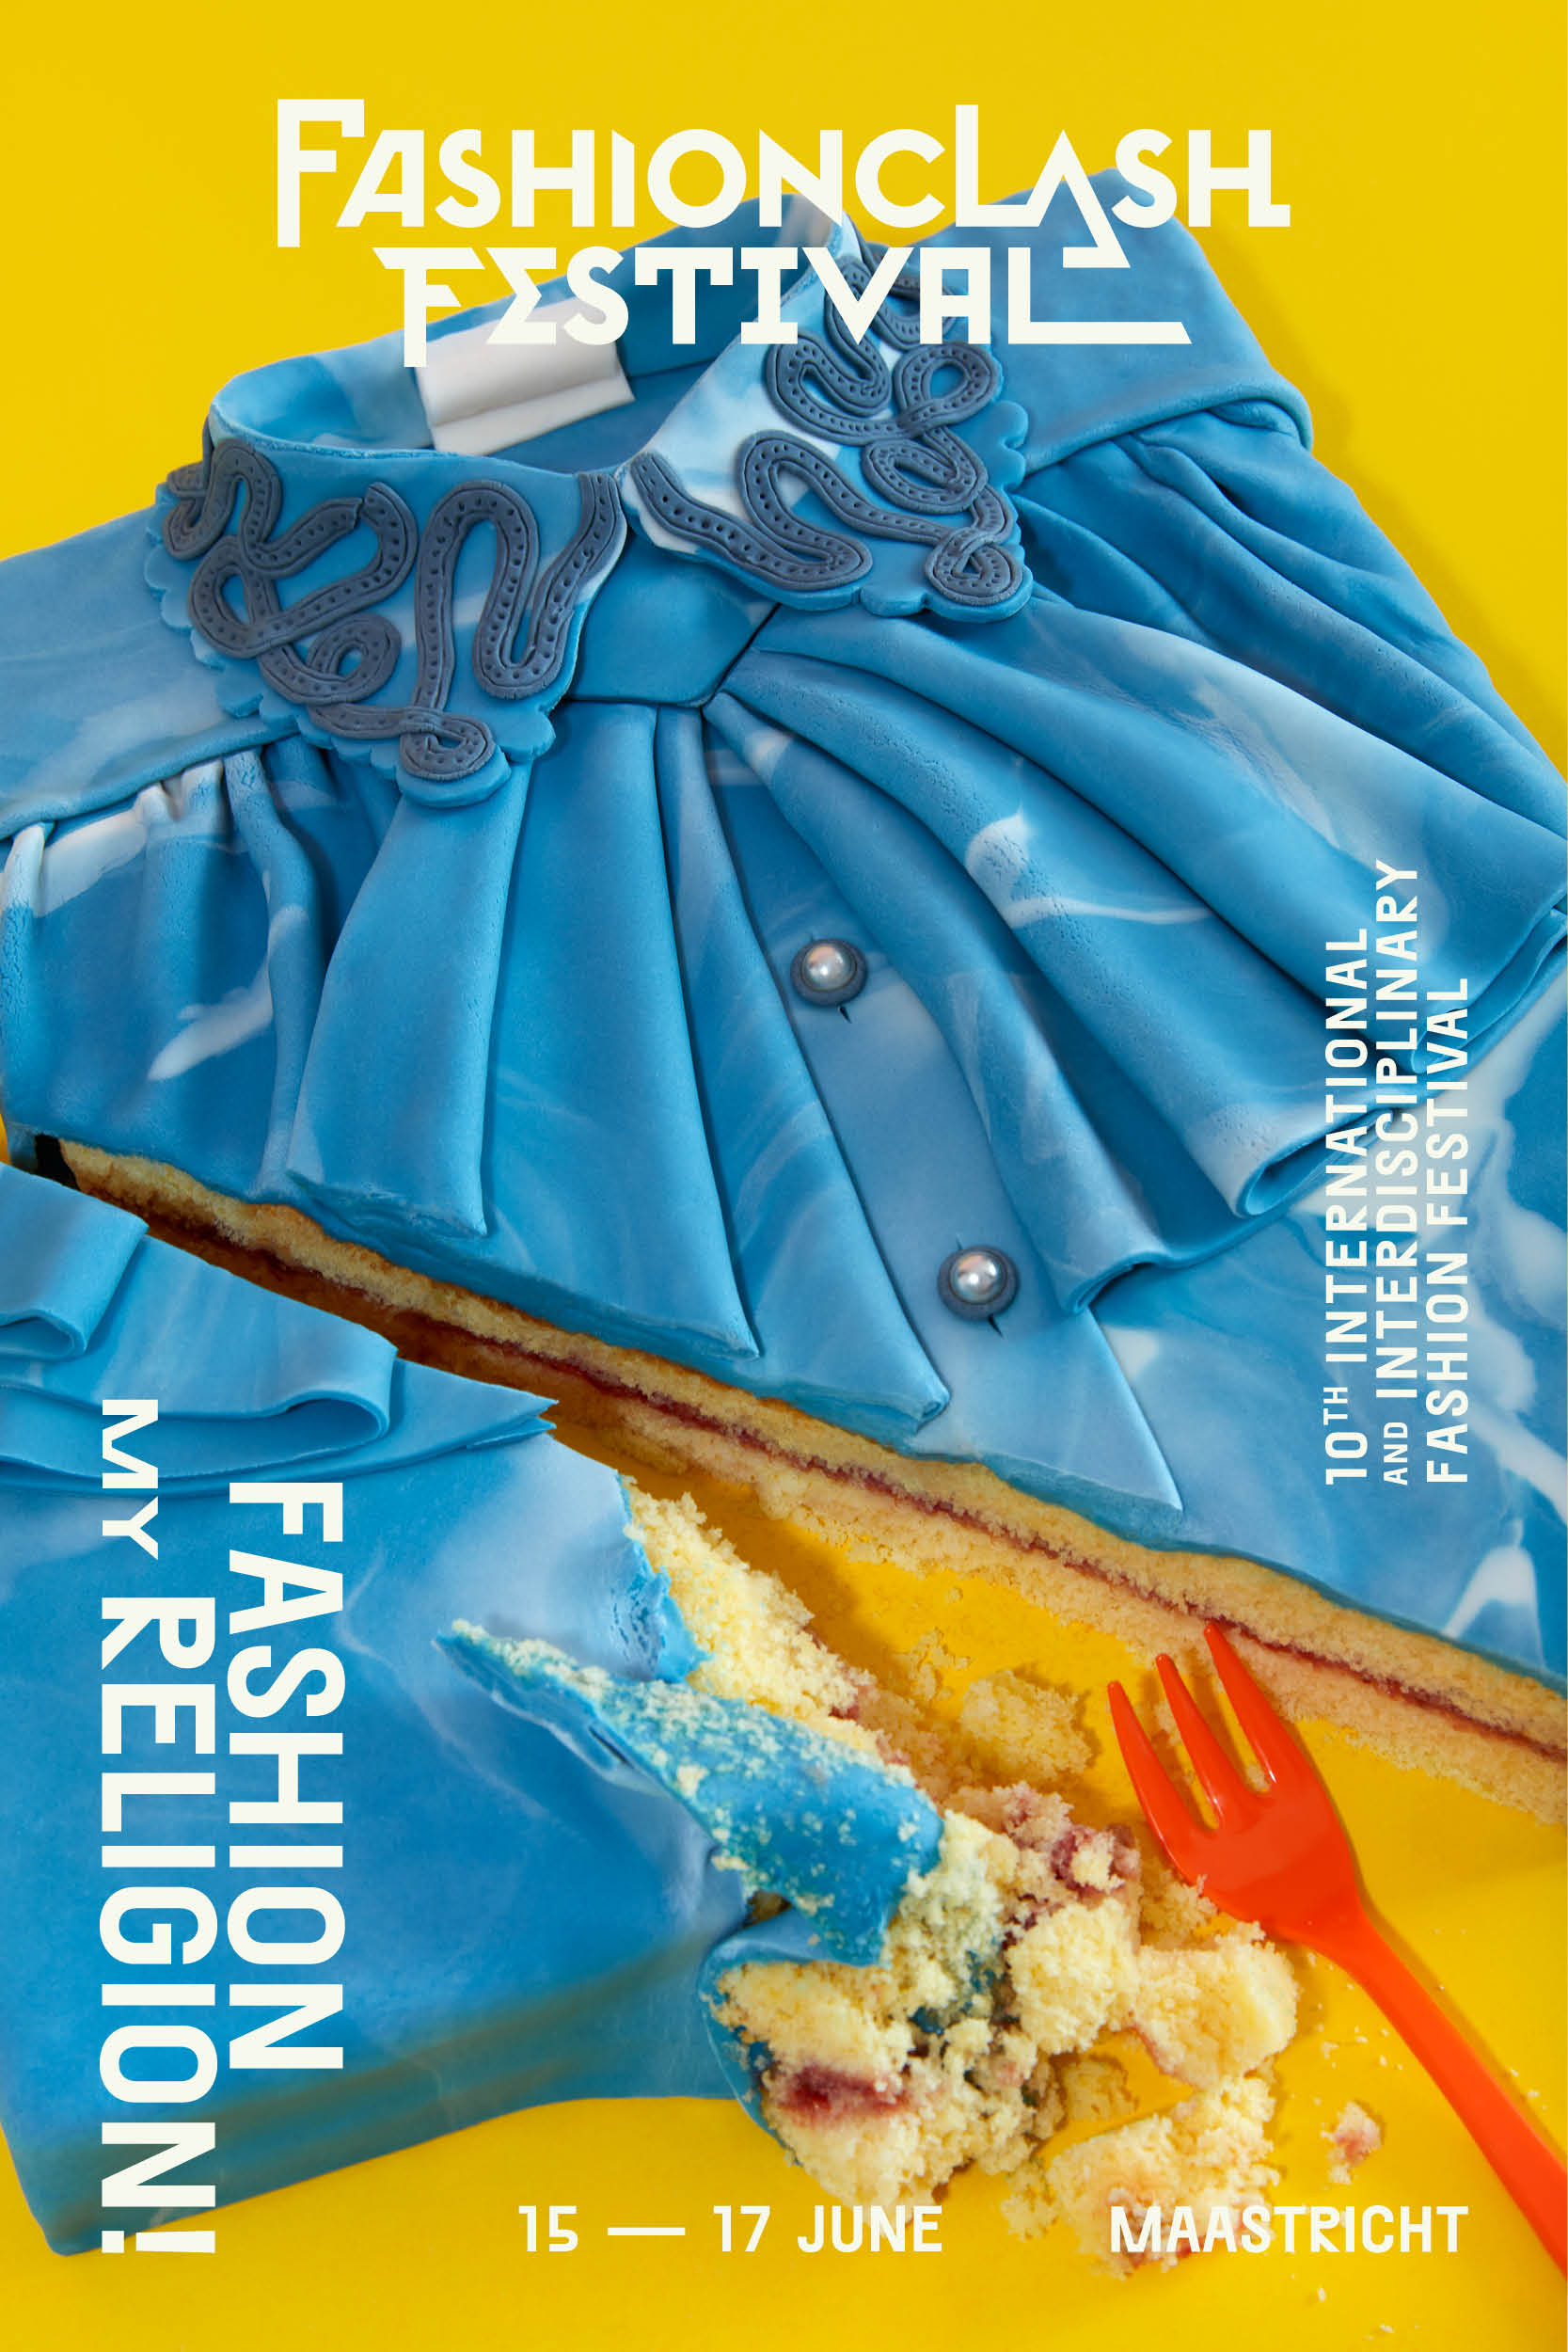 Campagne: FASHIONCLASH in collaboration with Fashion Collective Das Leben am Haverkamp. Photo:Lonneke van der Palen | Graphic Design:Studio Noto.Cakes based on favorite garments (among others of FASHIONCLASH Founders Nawie Kuiper, Branko Popovic and Laurens Hamacher)